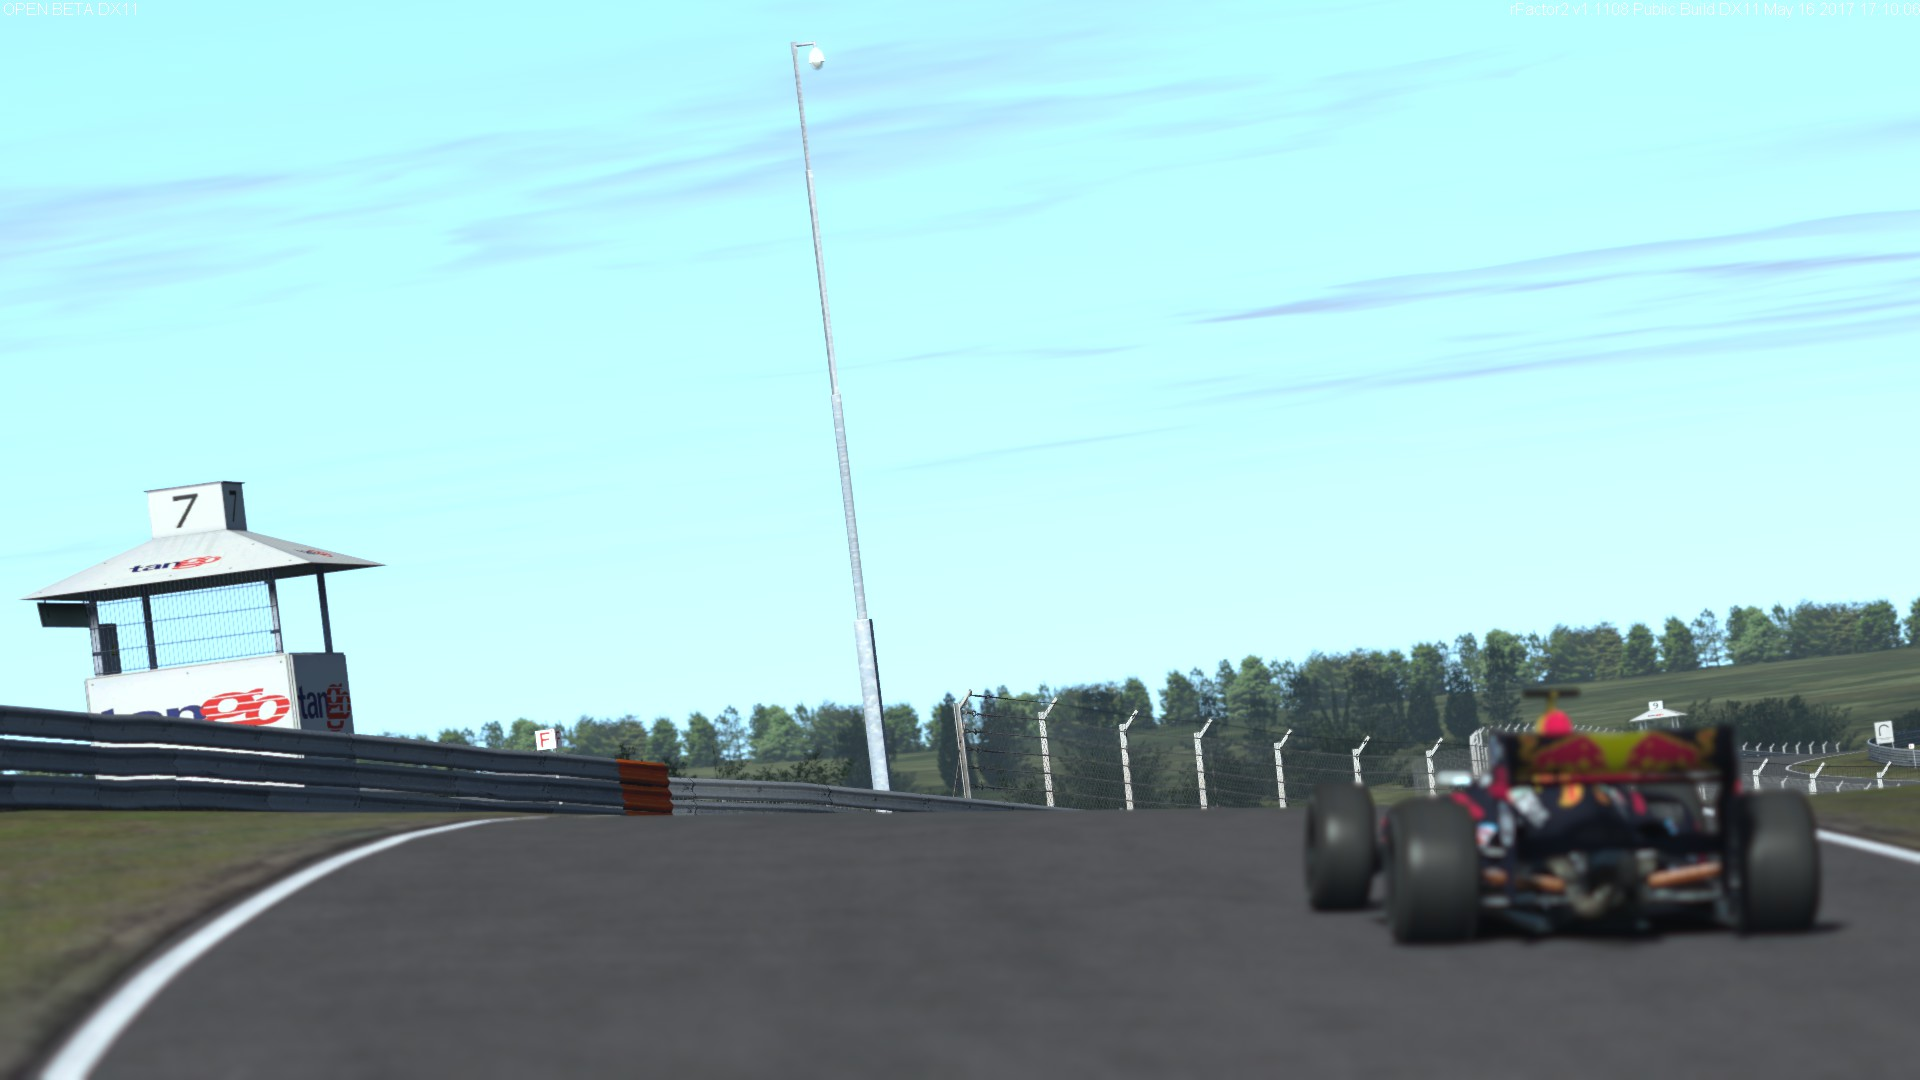 We Ve Included A Few Early Screenshots Which Show Our Progress With The Track And We Are Very Pleased That We Can Also Announce That We Ve Obtained An